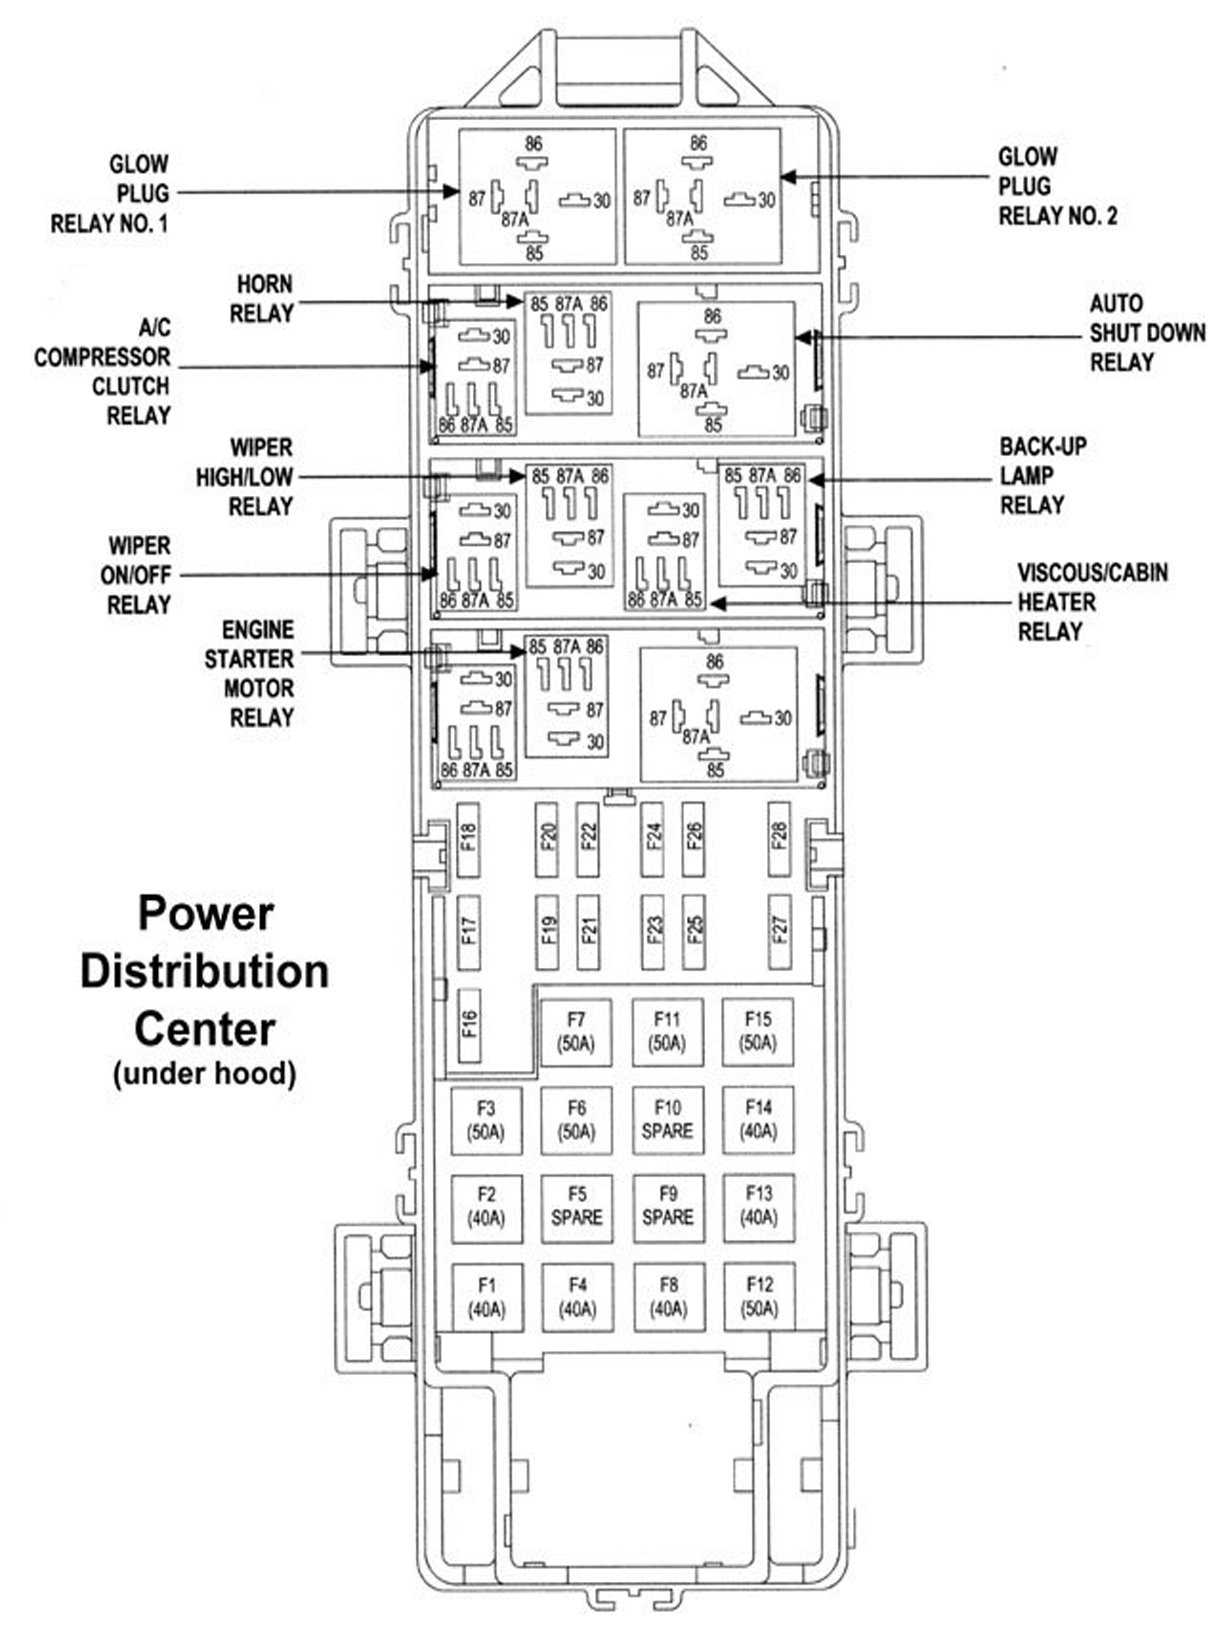 jeep xj fuse box location wiring diagram schematics 1997 jeep grand  cherokee fuse box diagram 2002